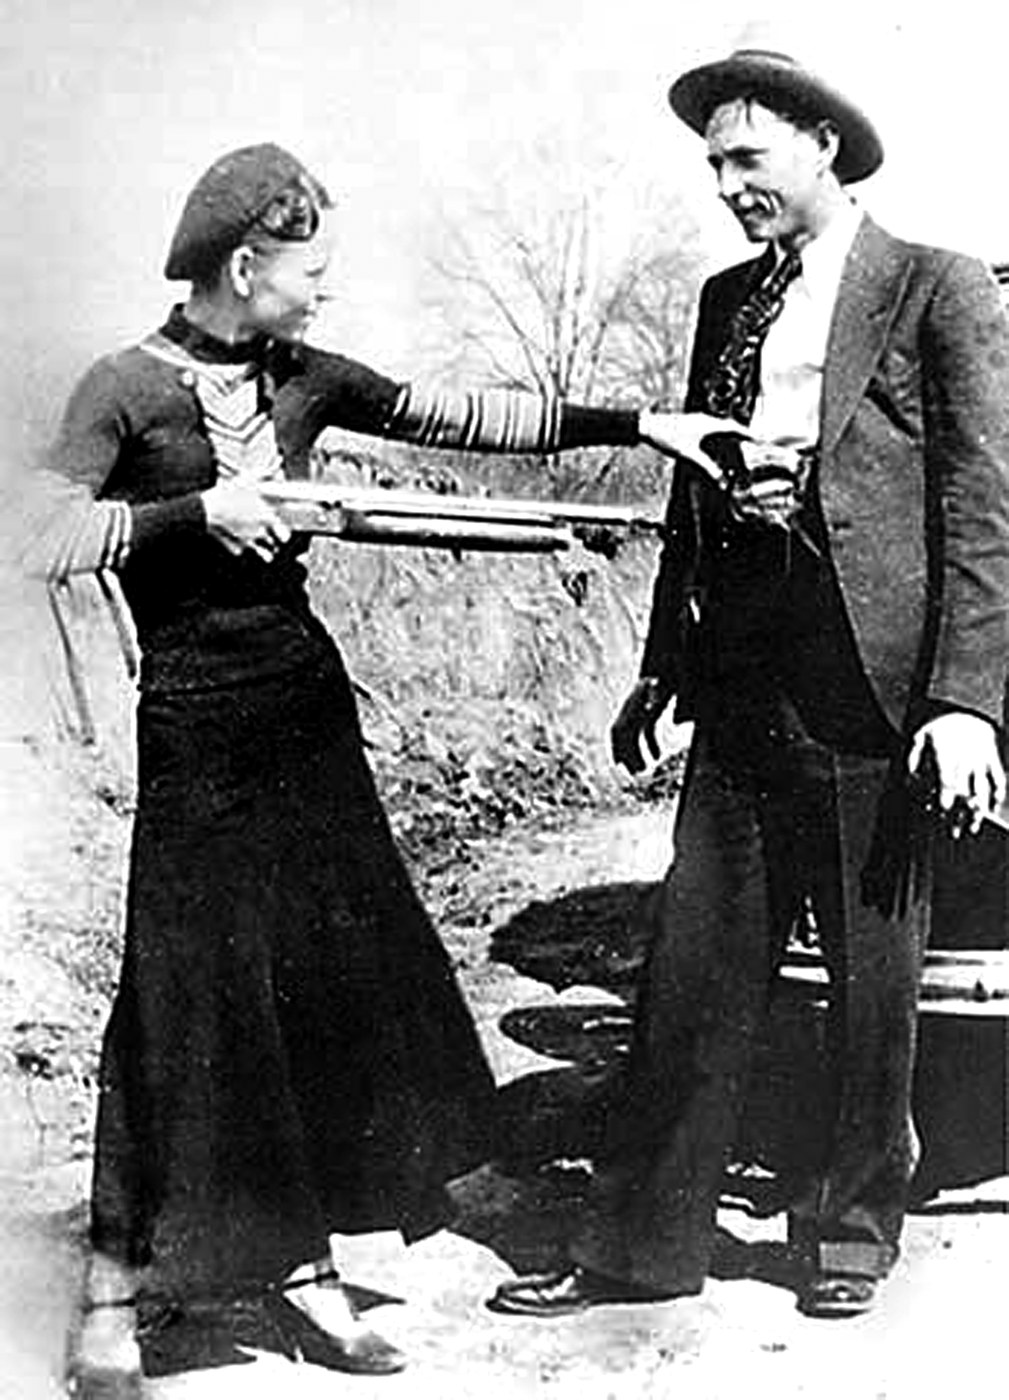 Bonnie and clyde Gun.jpeg